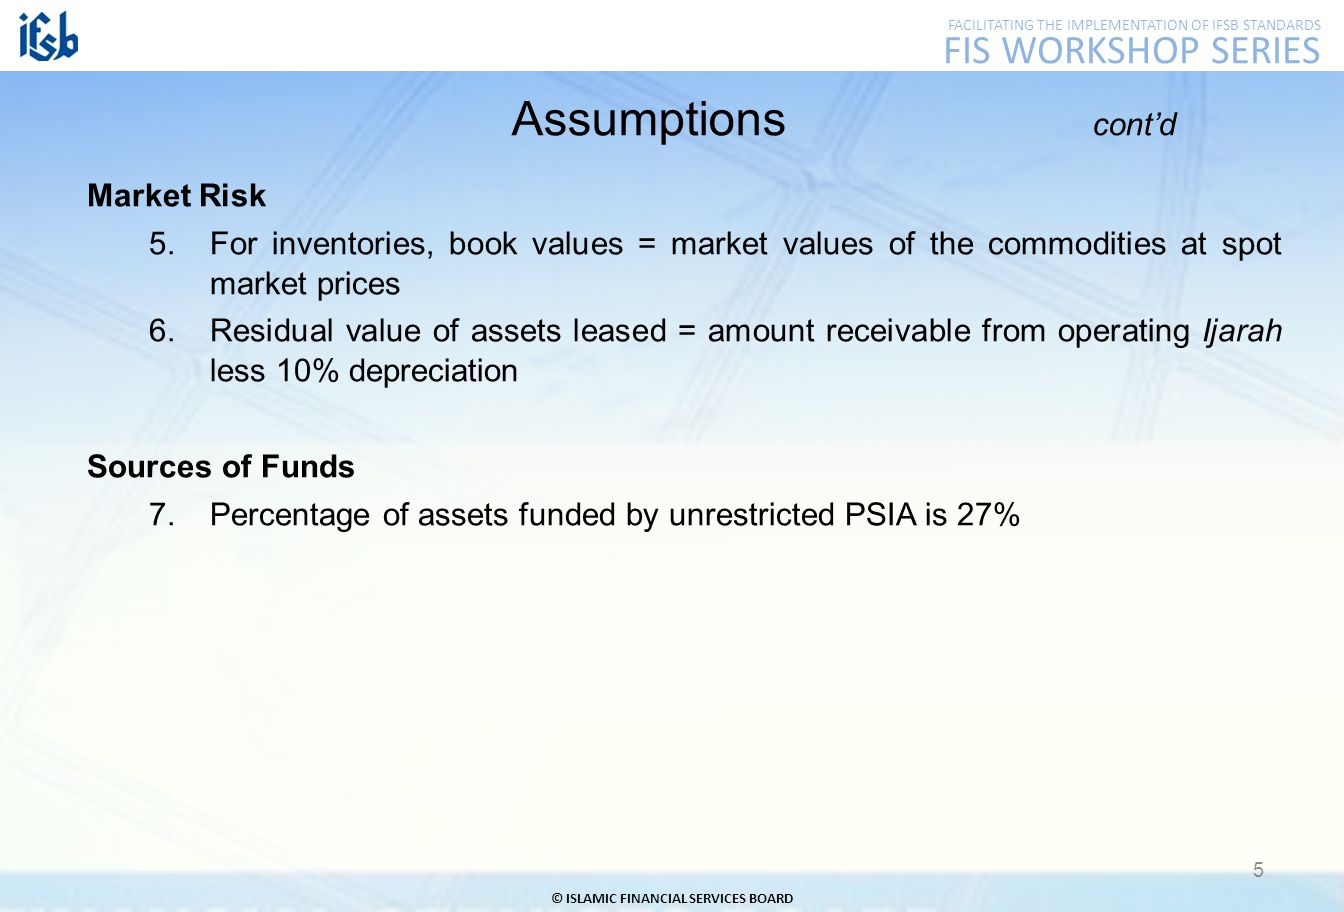 FACILITATING THE IMPLEMENTATION OF IFSB STANDARDS FIS WORKSHOP SERIES © ISLAMIC FINANCIAL SERVICES BOARD 5 Assumptions cont'd Market Risk 5.For inventories, book values = market values of the commodities at spot market prices 6.Residual value of assets leased = amount receivable from operating Ijarah less 10% depreciation Sources of Funds 7.Percentage of assets funded by unrestricted PSIA is 27%